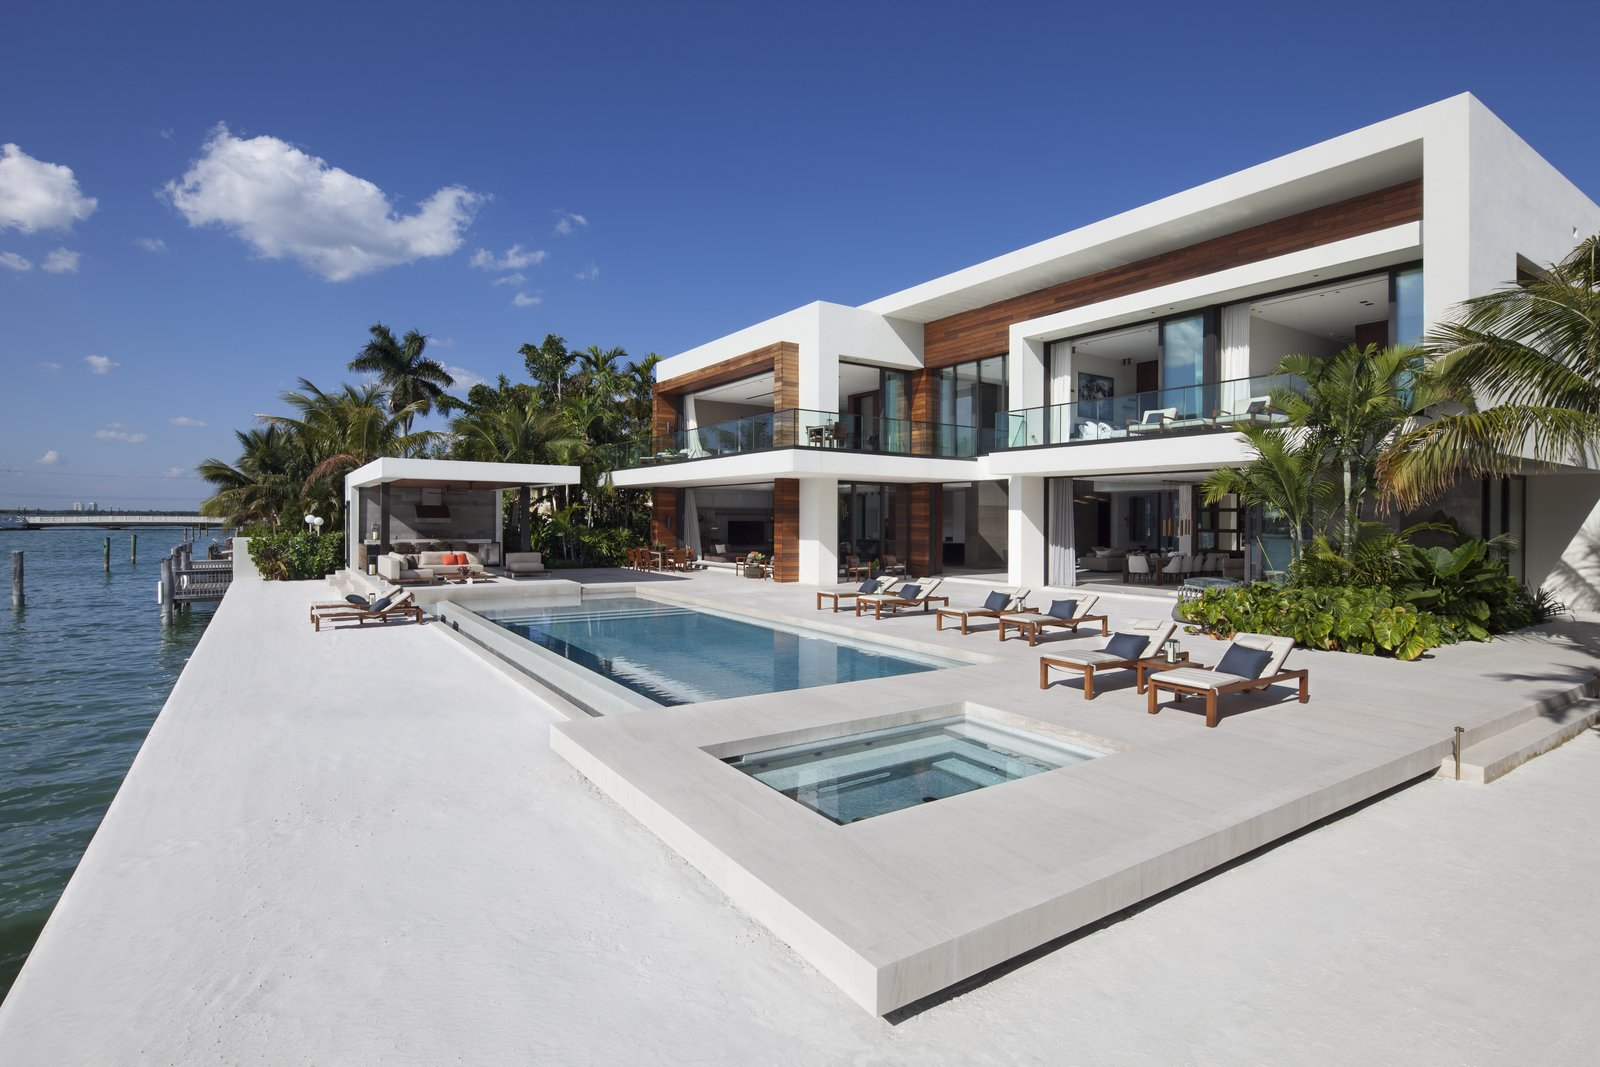 Rear exterior with pool, hot tub, and private white sand beach  Casa Clara by Choeff Levy Fischman